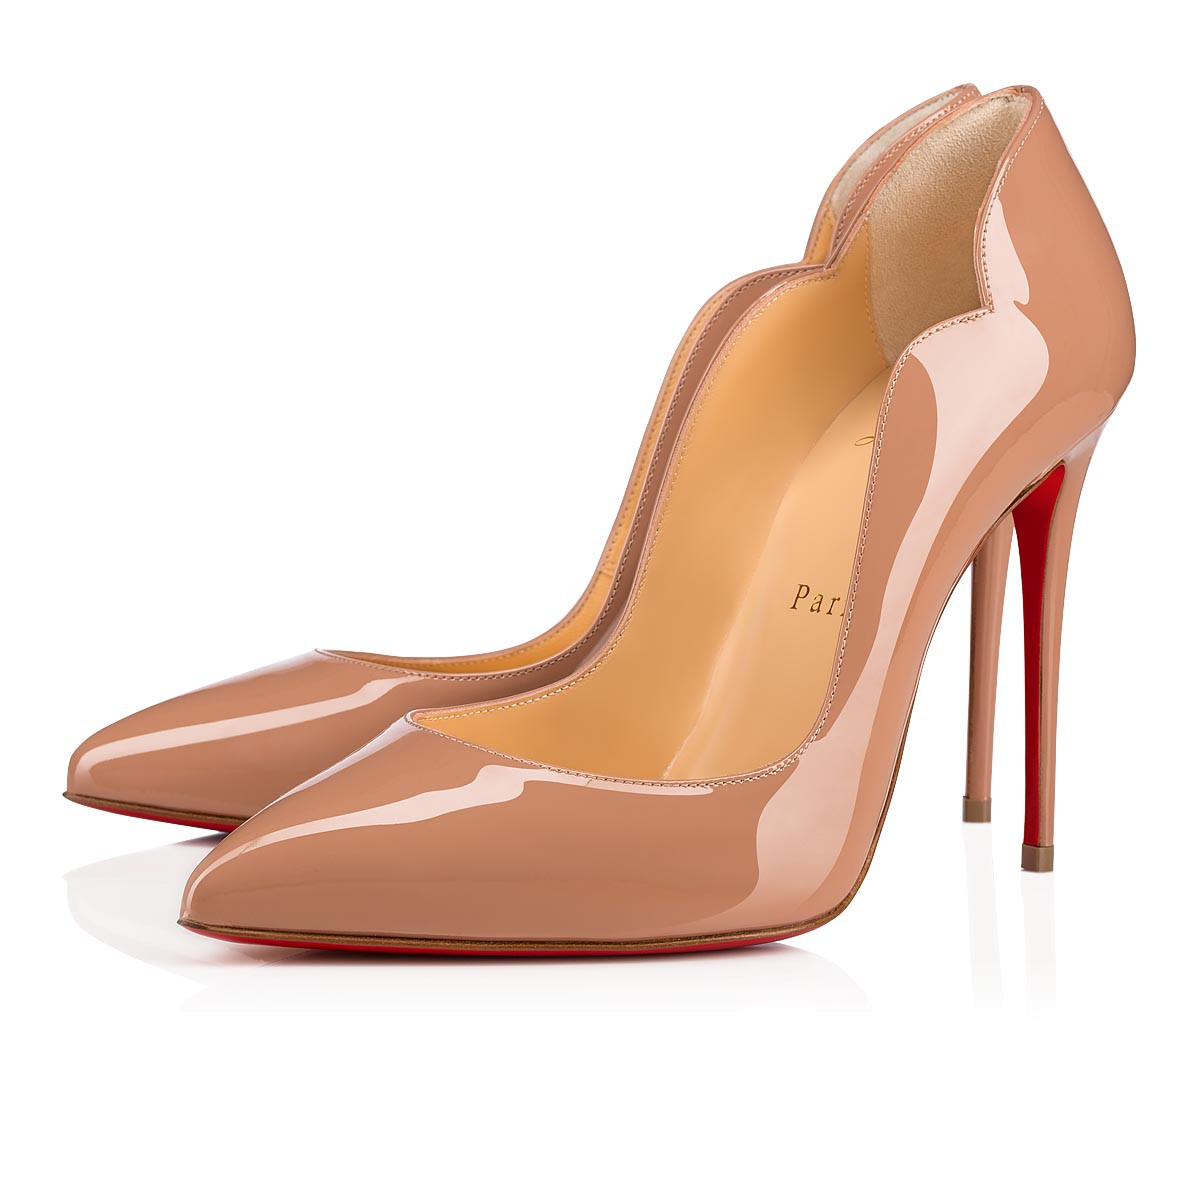 Shoes - Hot Chick Patent - Christian Louboutin